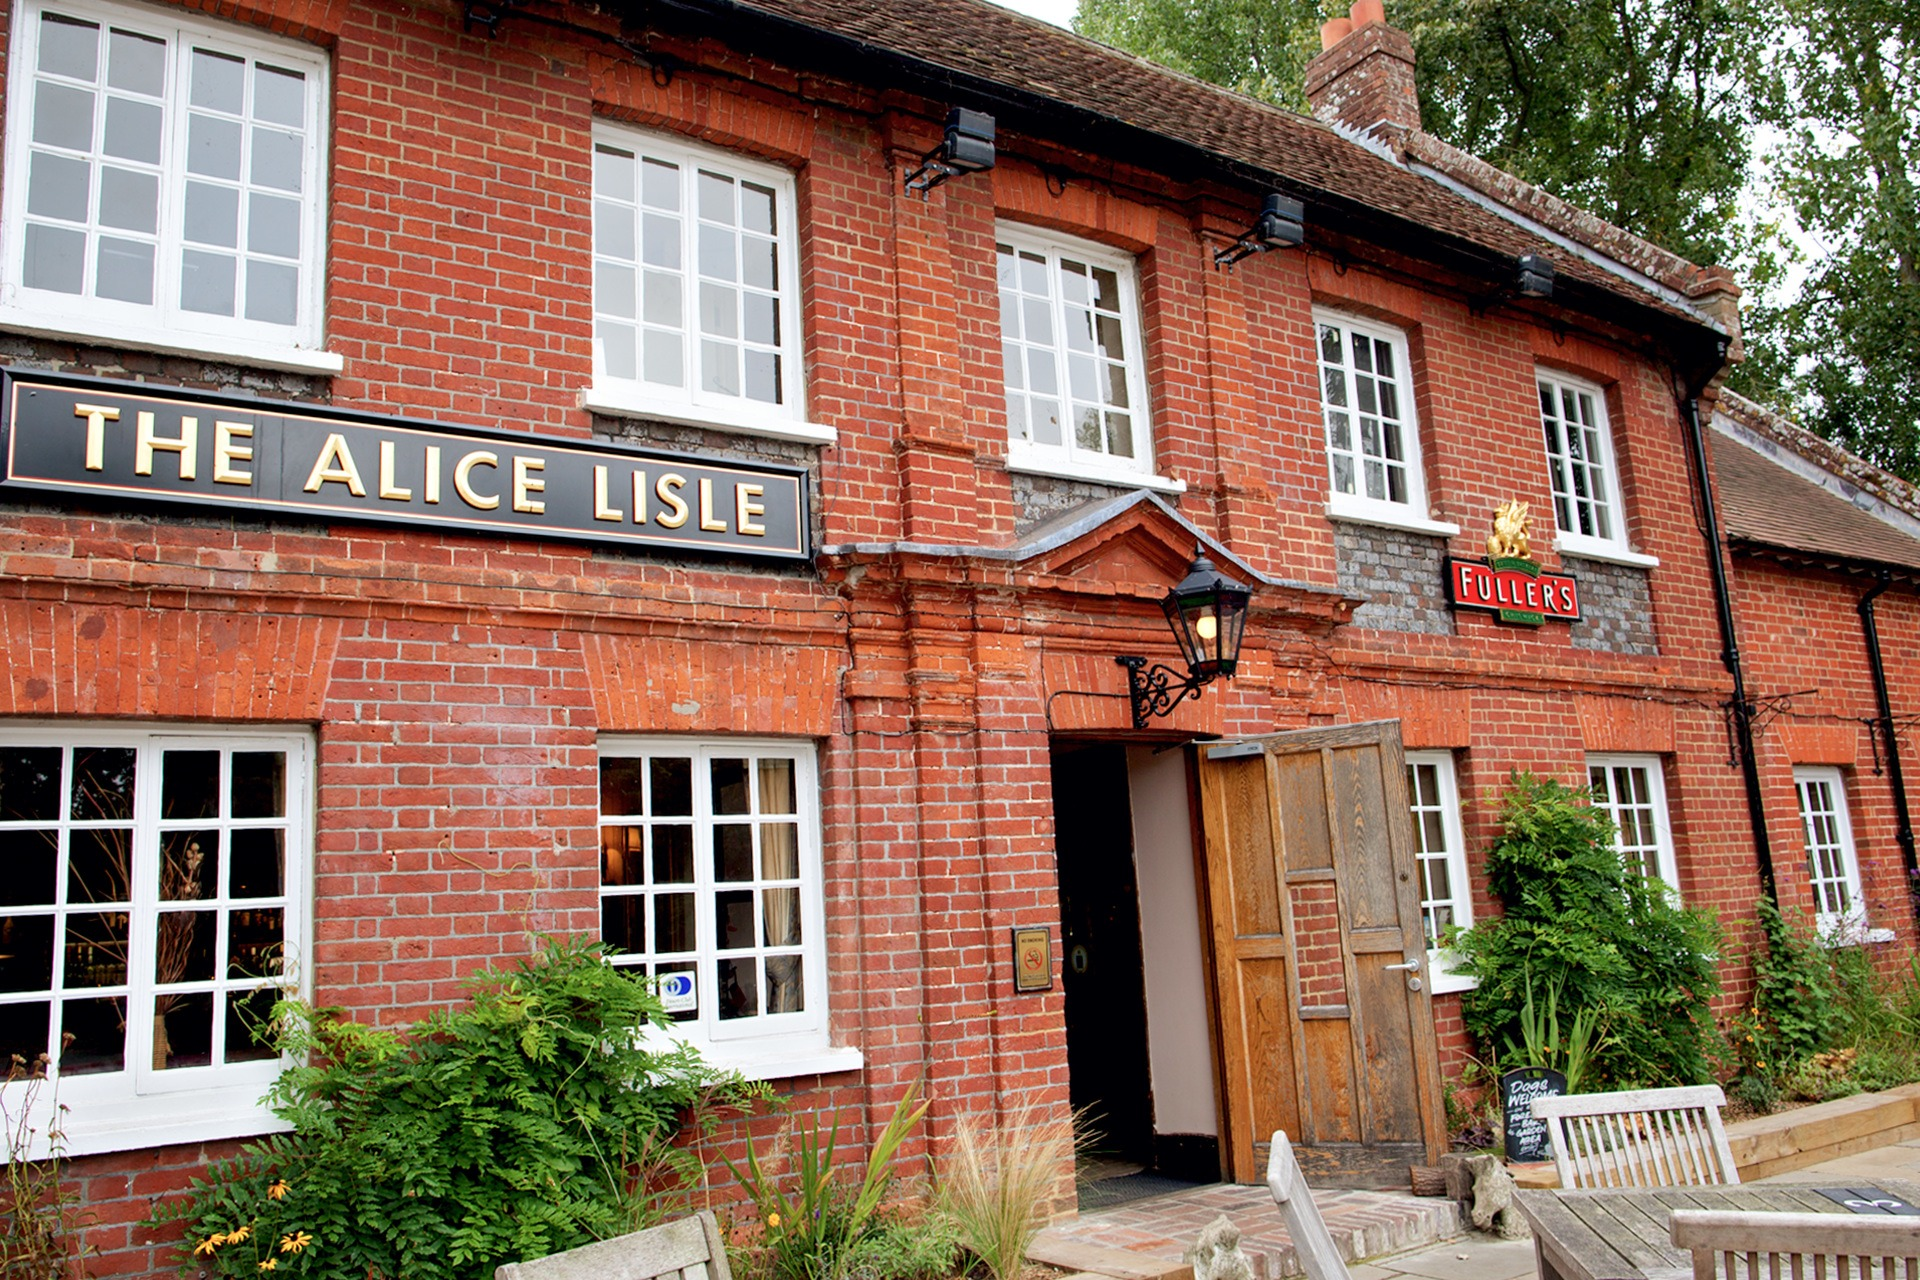 The Alice Lisle, Ringwood - Merry Wives of Windsor